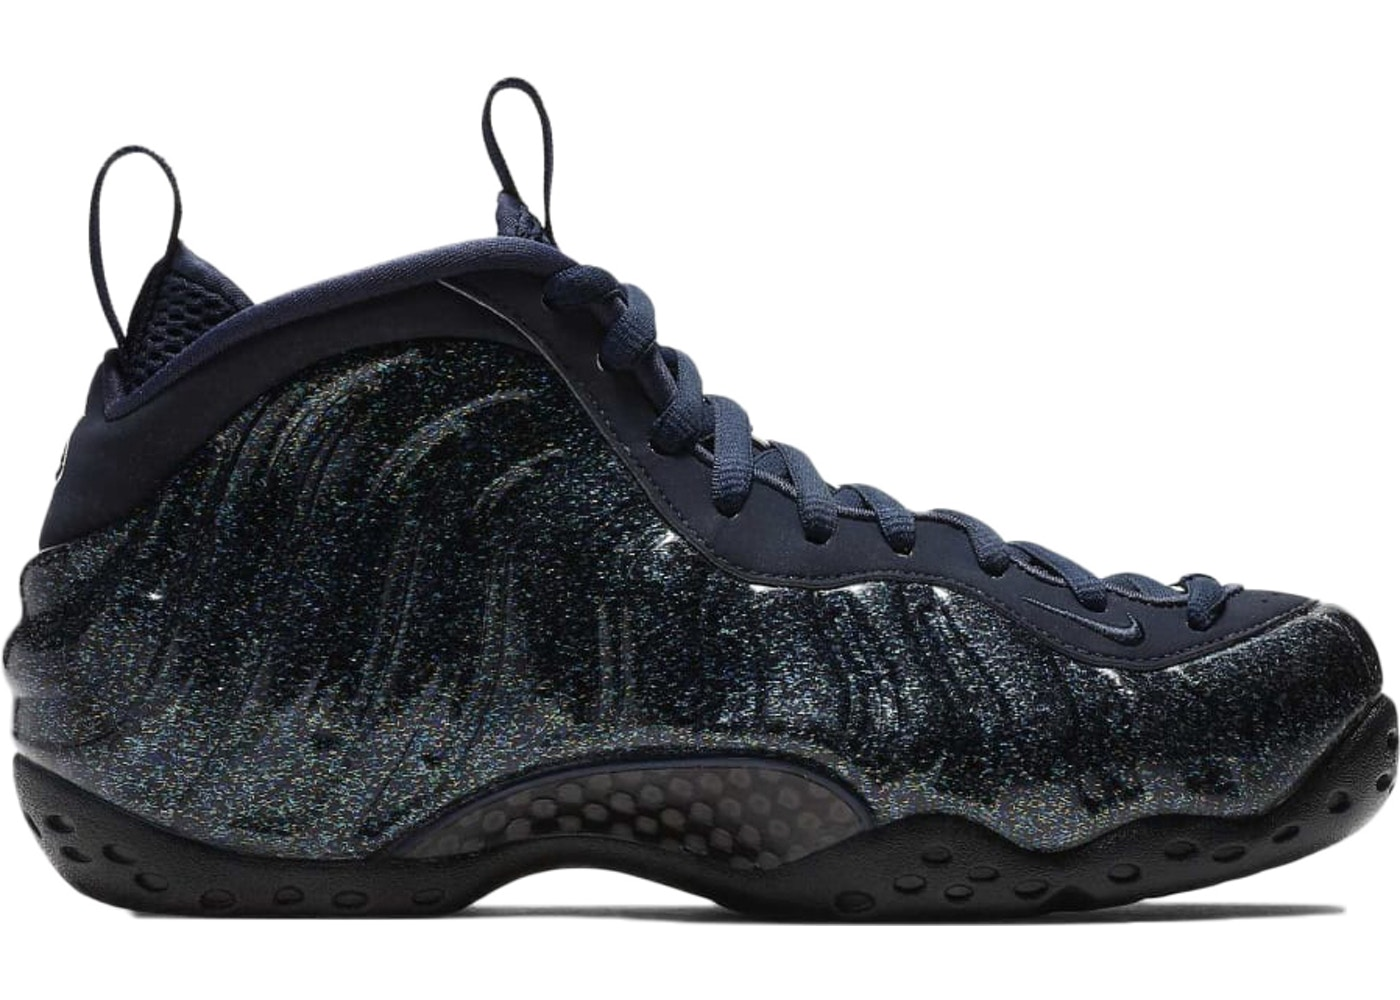 newest 90a10 e678c Sell. or Ask. Size  10.5W. View All Bids. Air Foamposite One Obsidian ...